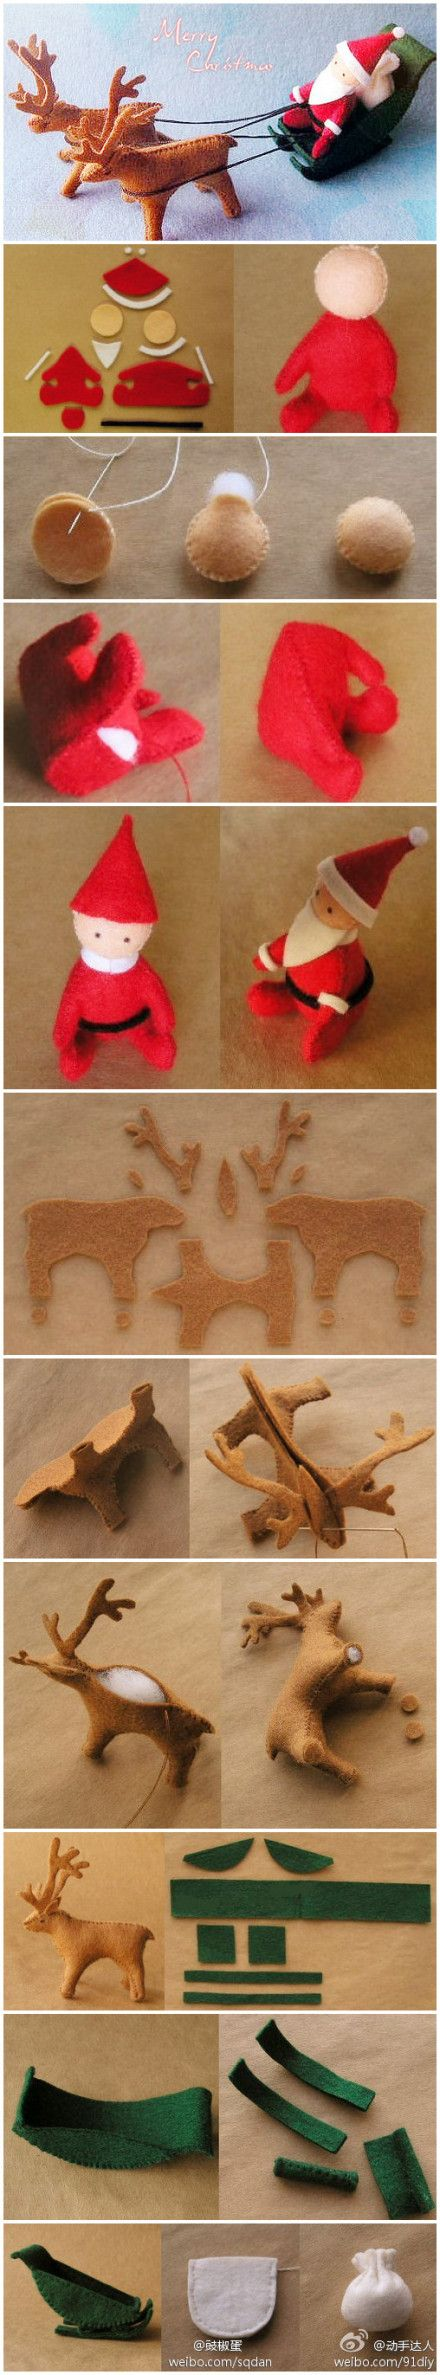 Santa and his Christmas sleigh... Adorable. I'll try and attempt this once; I might not come out all that successful, but I'll still attempt it.